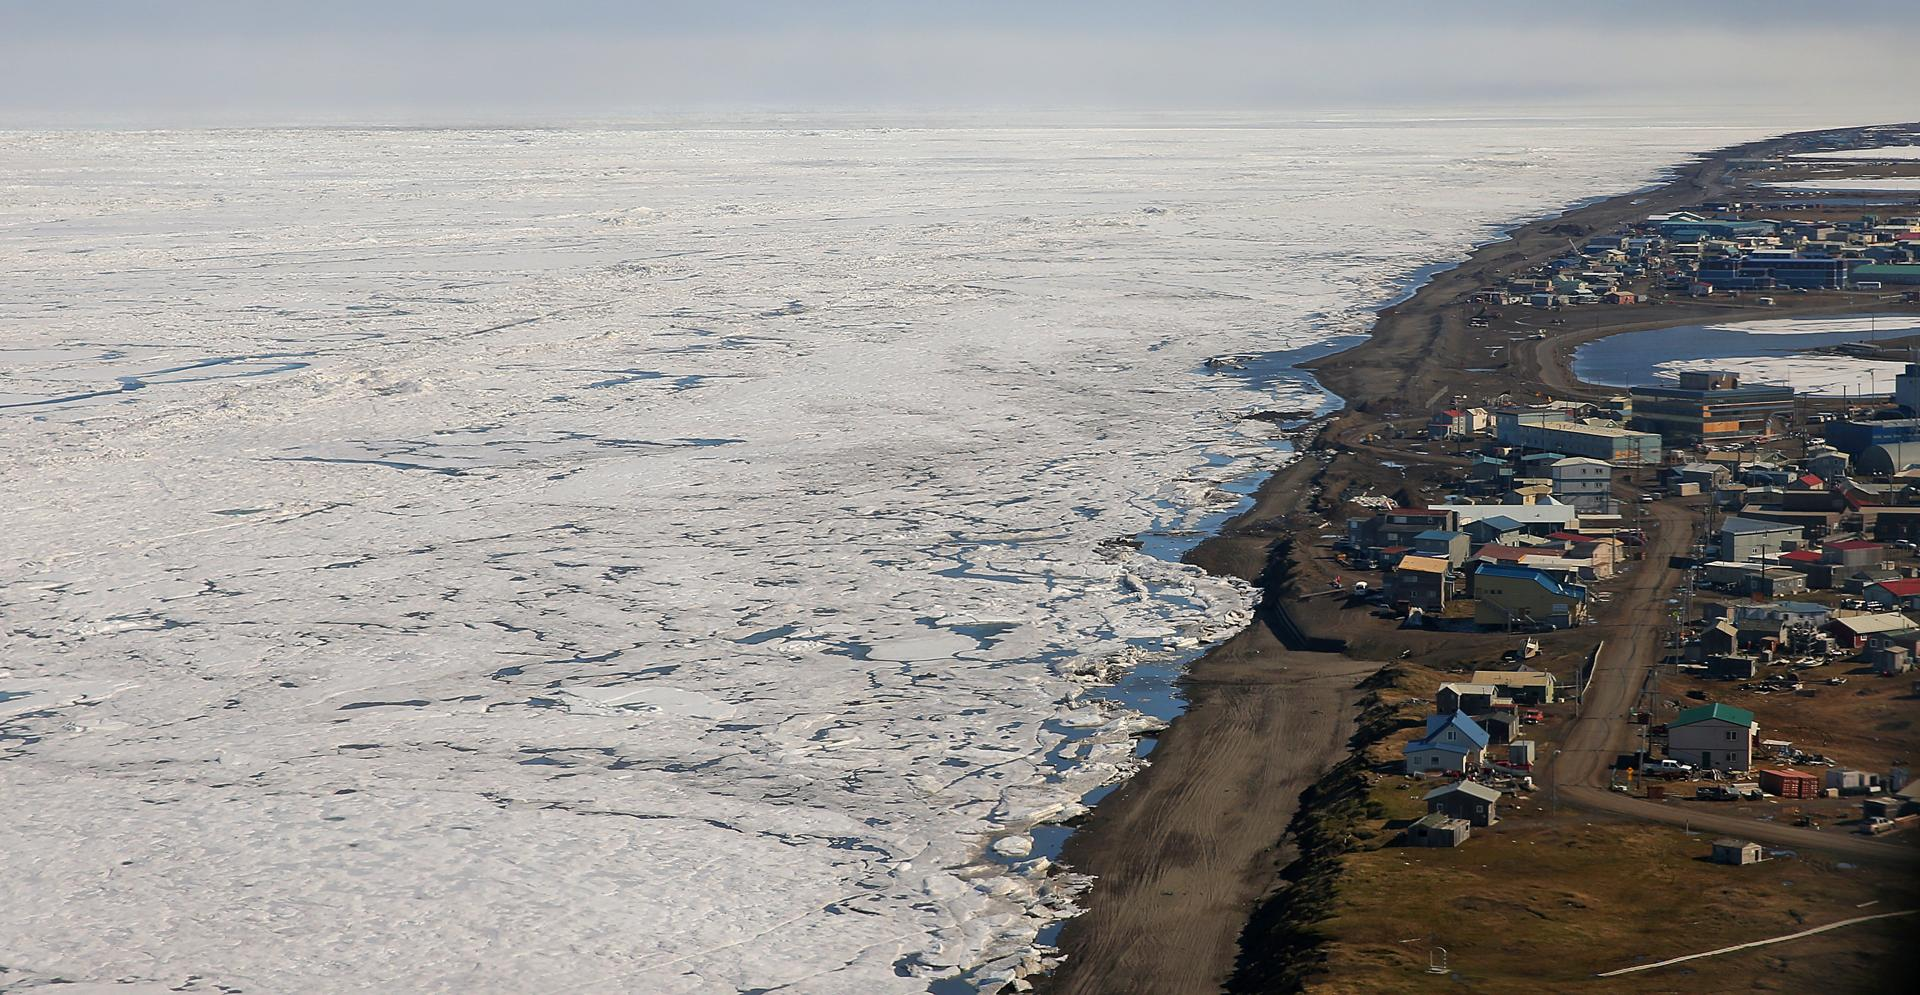 Officials have sought to protect Barrow, Alaska, which is fewer than 15 feet above sea level, by moving municipal buildings and lining the coast with berms and sandbags.